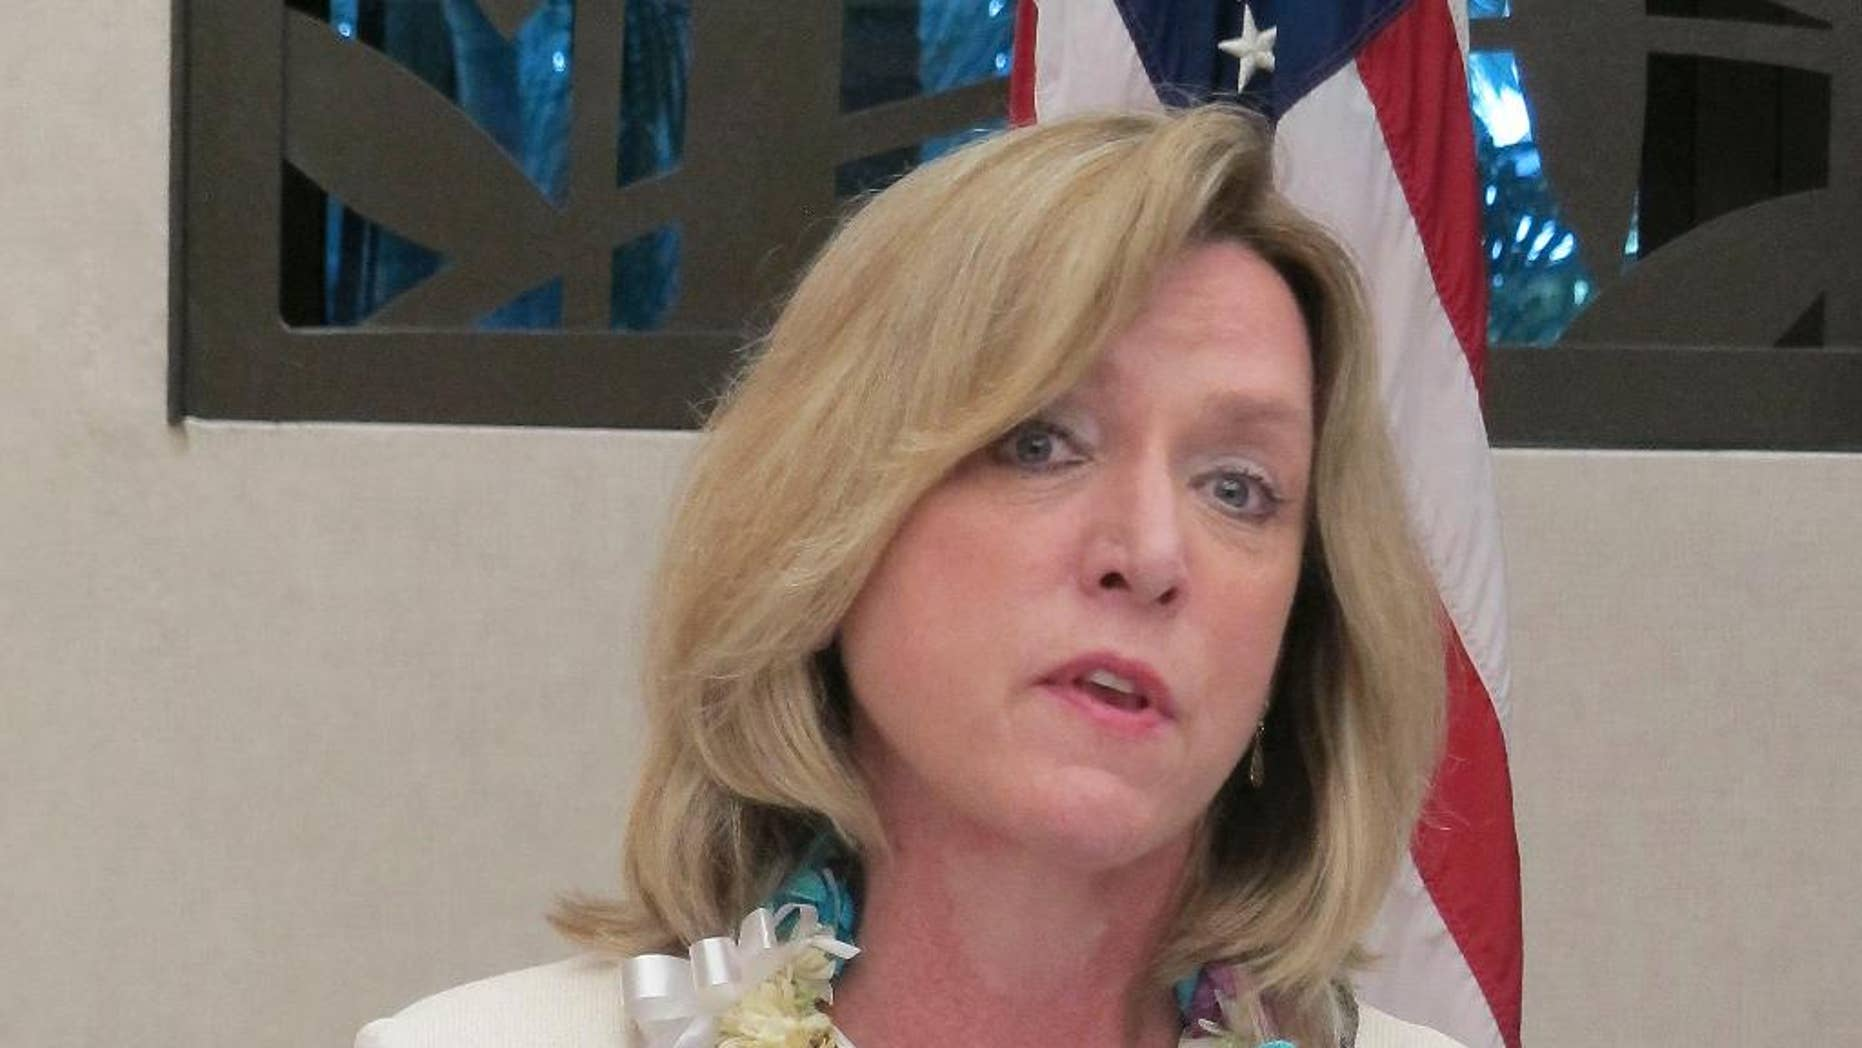 Air Force Secretary Deborah Lee James speaks to reporters at Joint Base Pearl Harbor-Hickam in Hawaii on Monday, Nov. 17, 2014. James said she hopes to make all jobs in the service open to qualified women in the next year and a half. (AP Photo/Audrey McAvoy)